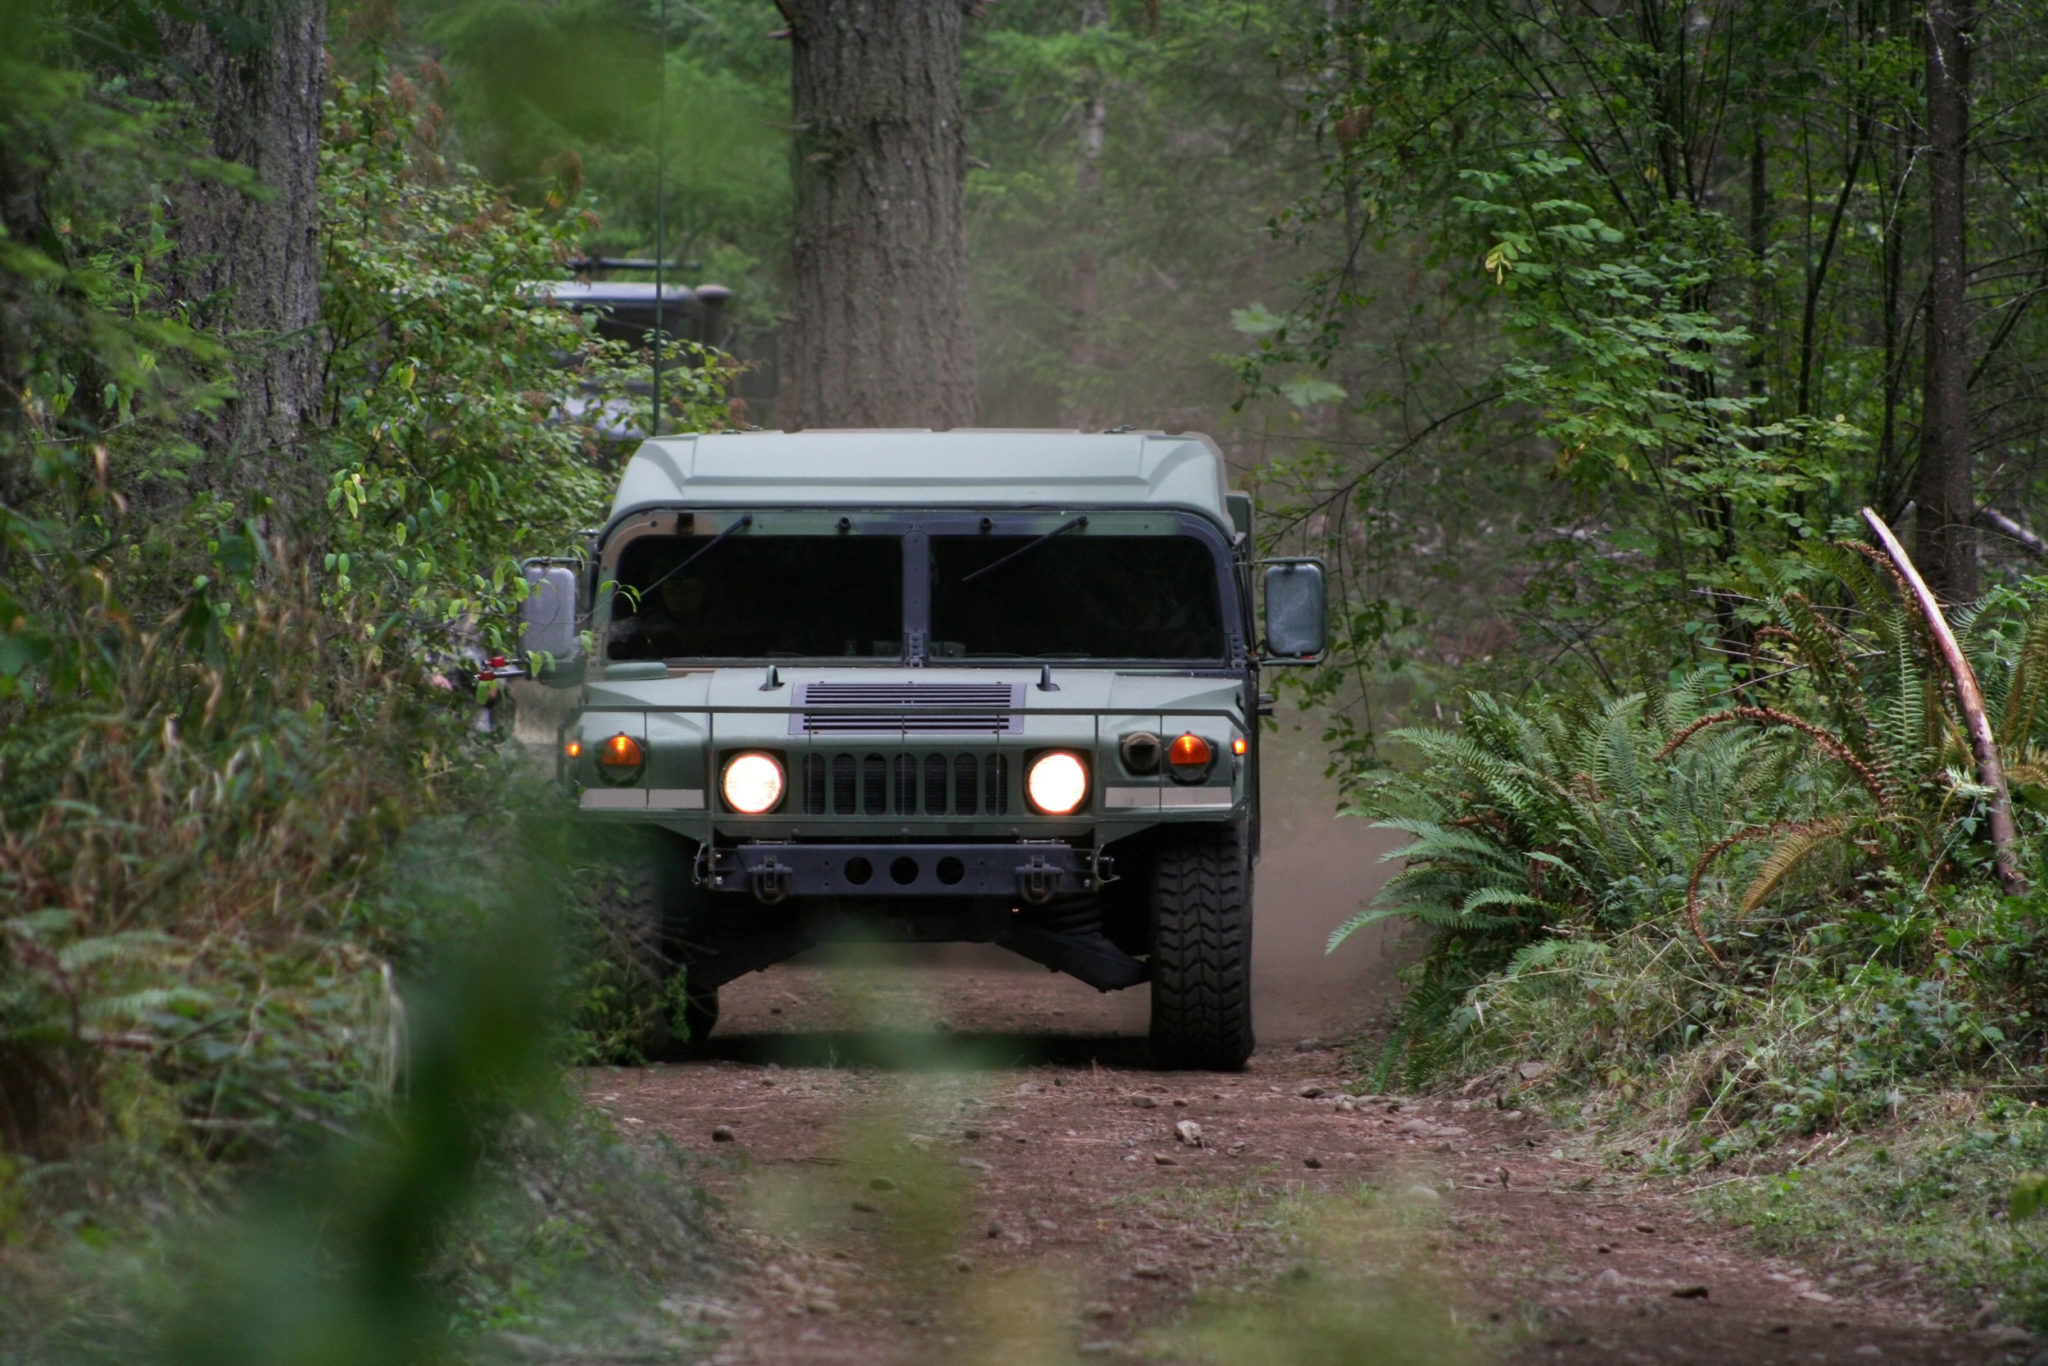 Marines in Humvees refine their combat driving skills in jungles of Okinawa